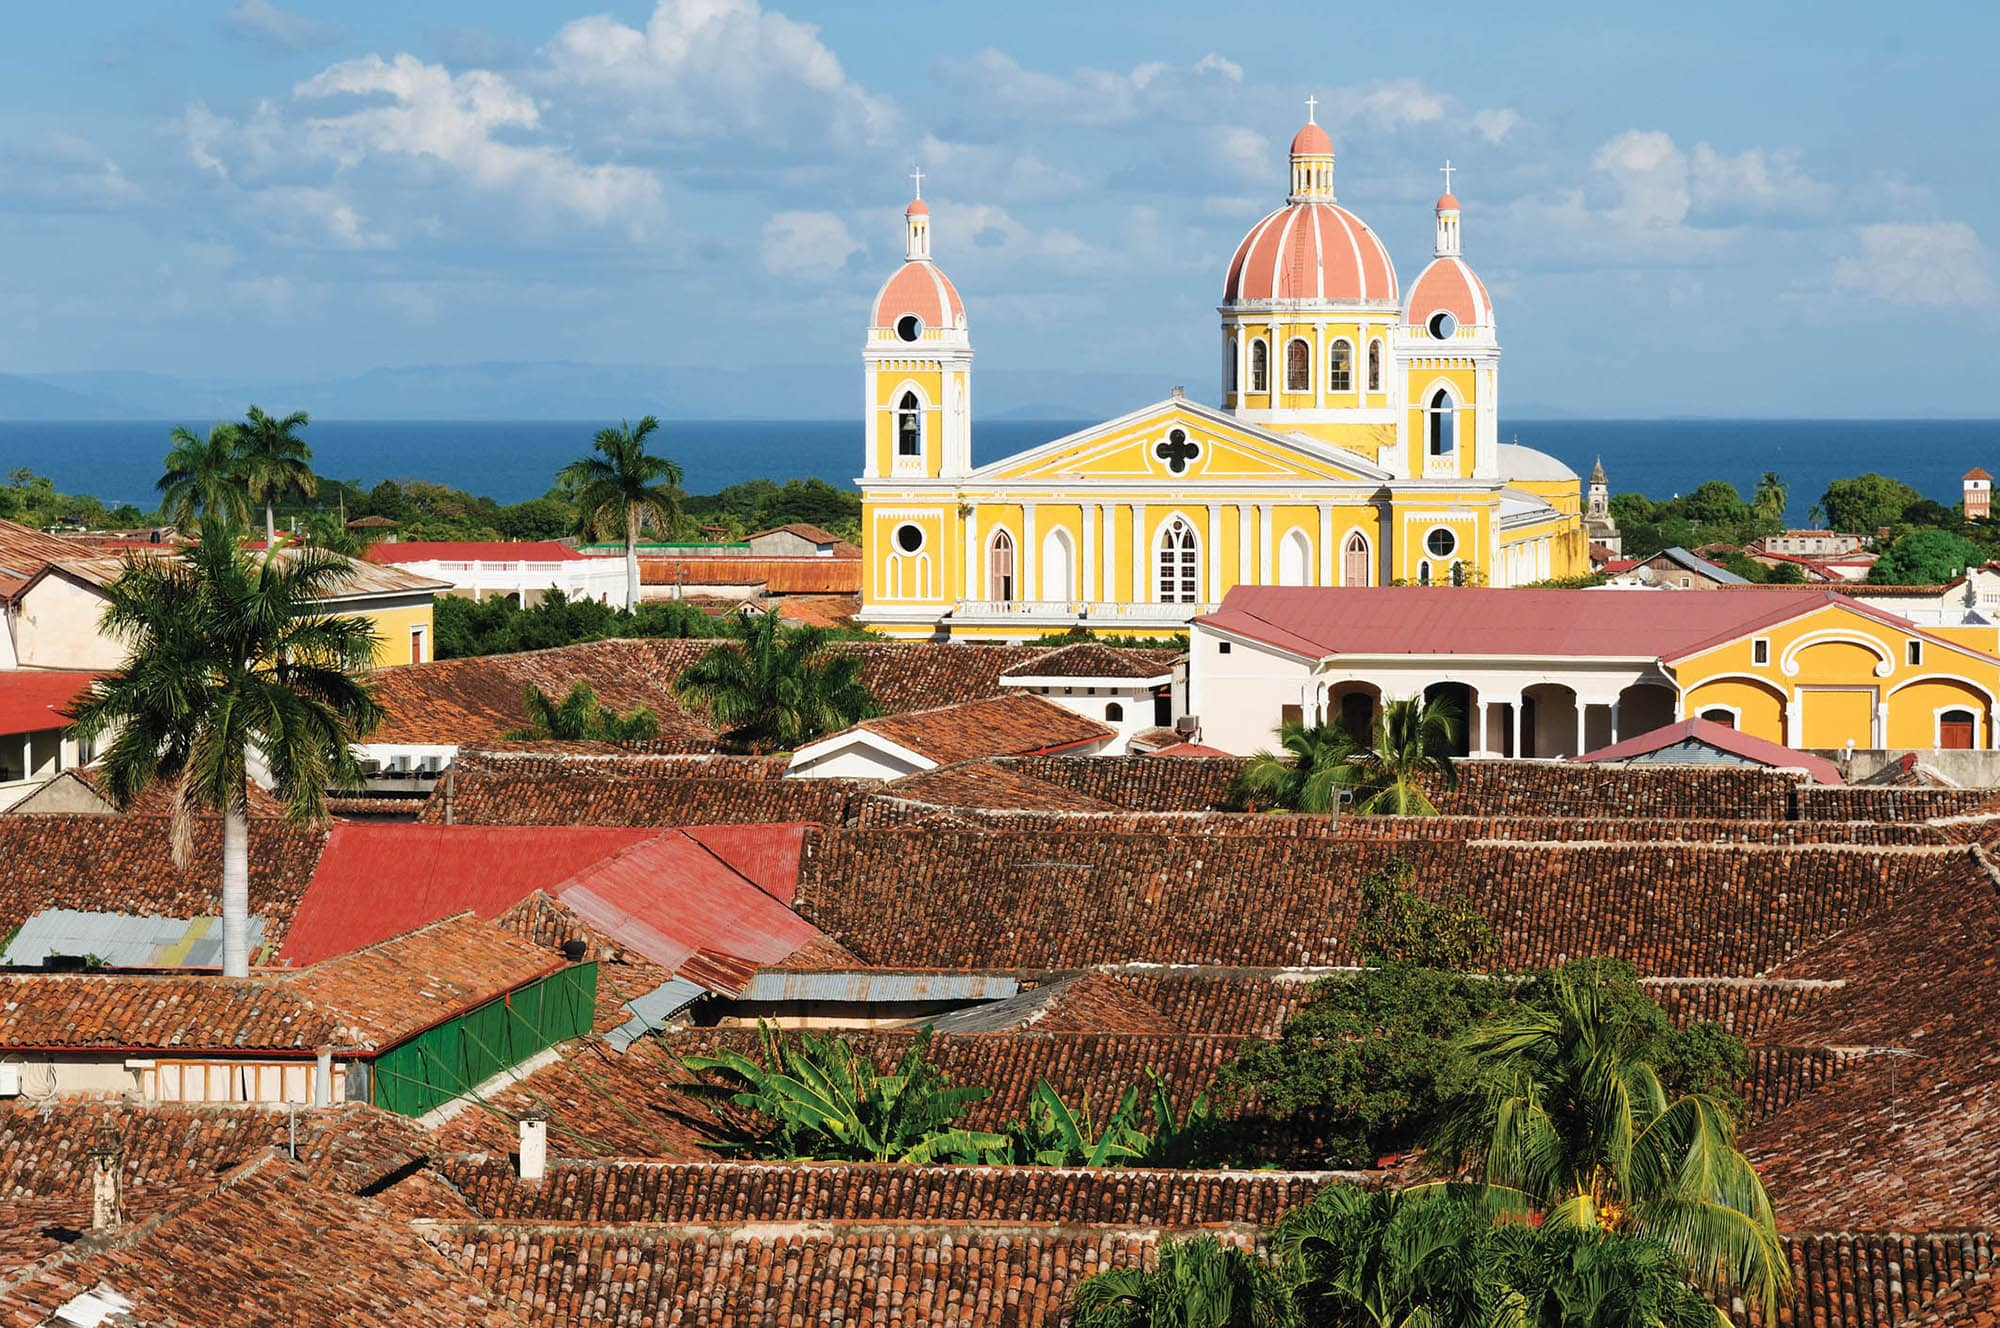 Granada - the colonial oldest Spanish city in Nicaragua has trim churches, the fine palm-covered plaza, and the colorful architecture. The picture present view on the colonial old town in Granada